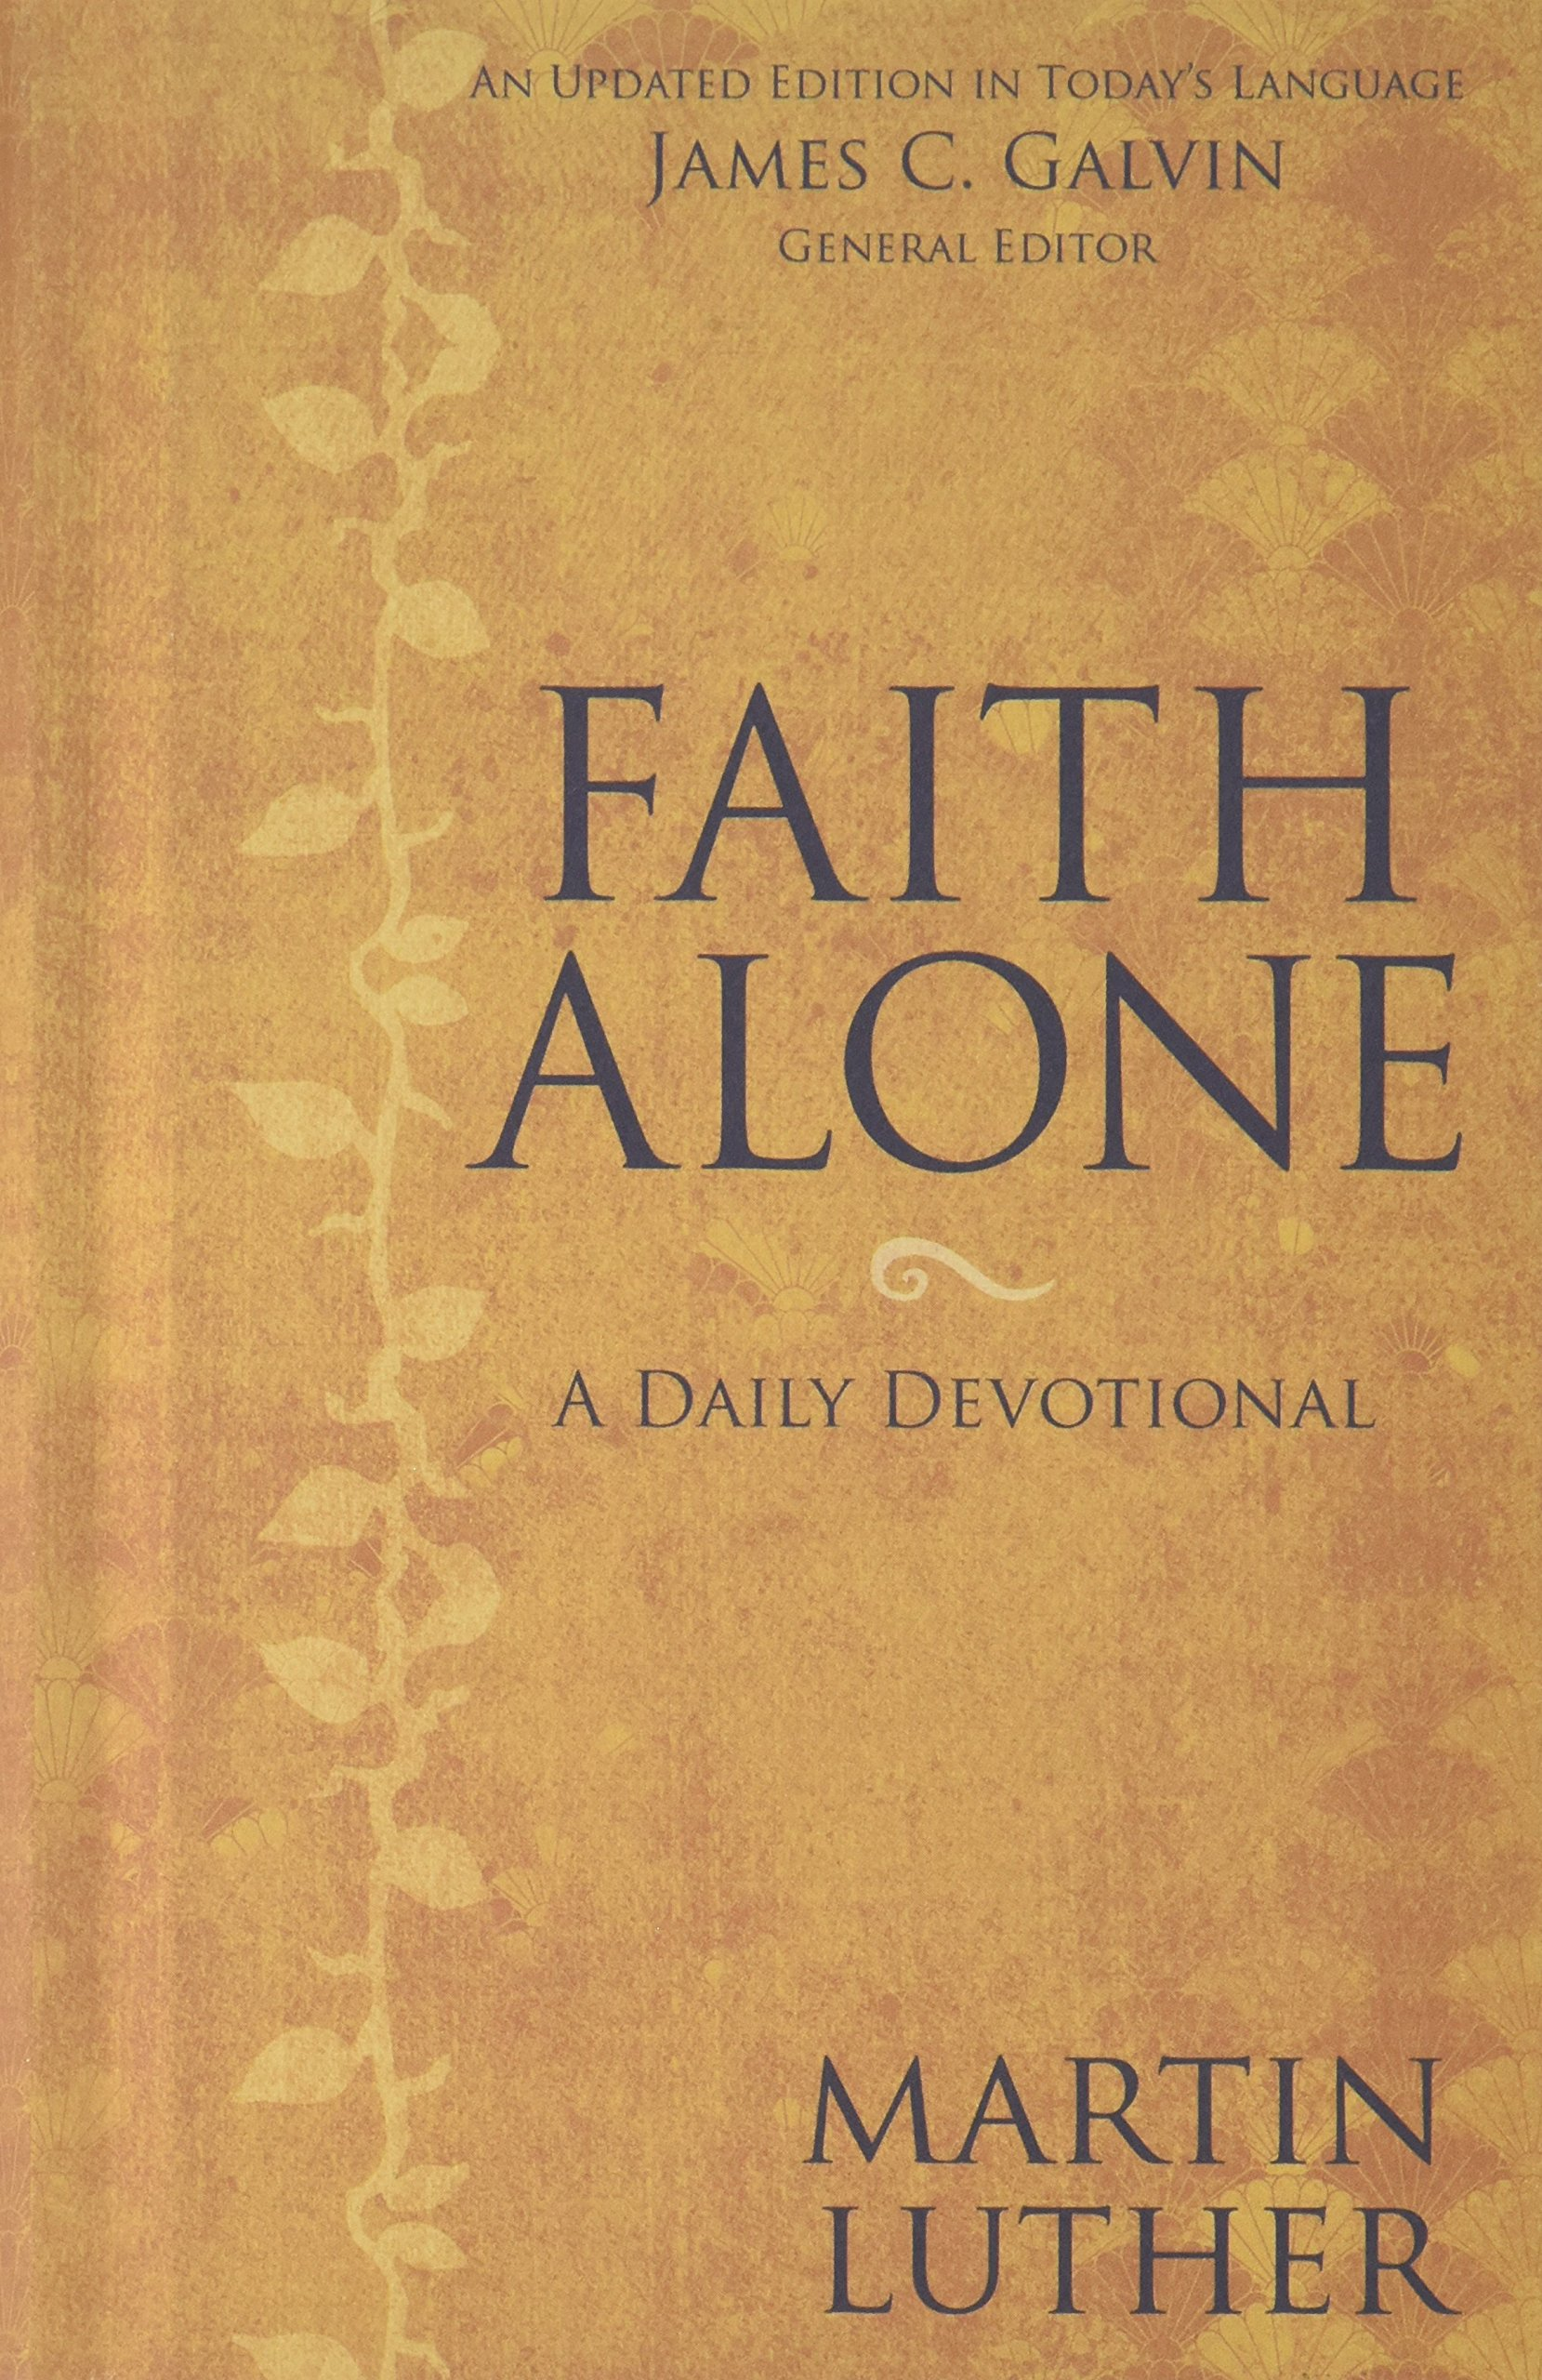 Faith Alone: A Daily Devotional: Martin Luther, James C Galvin:  9780310265368: Amazon: Books